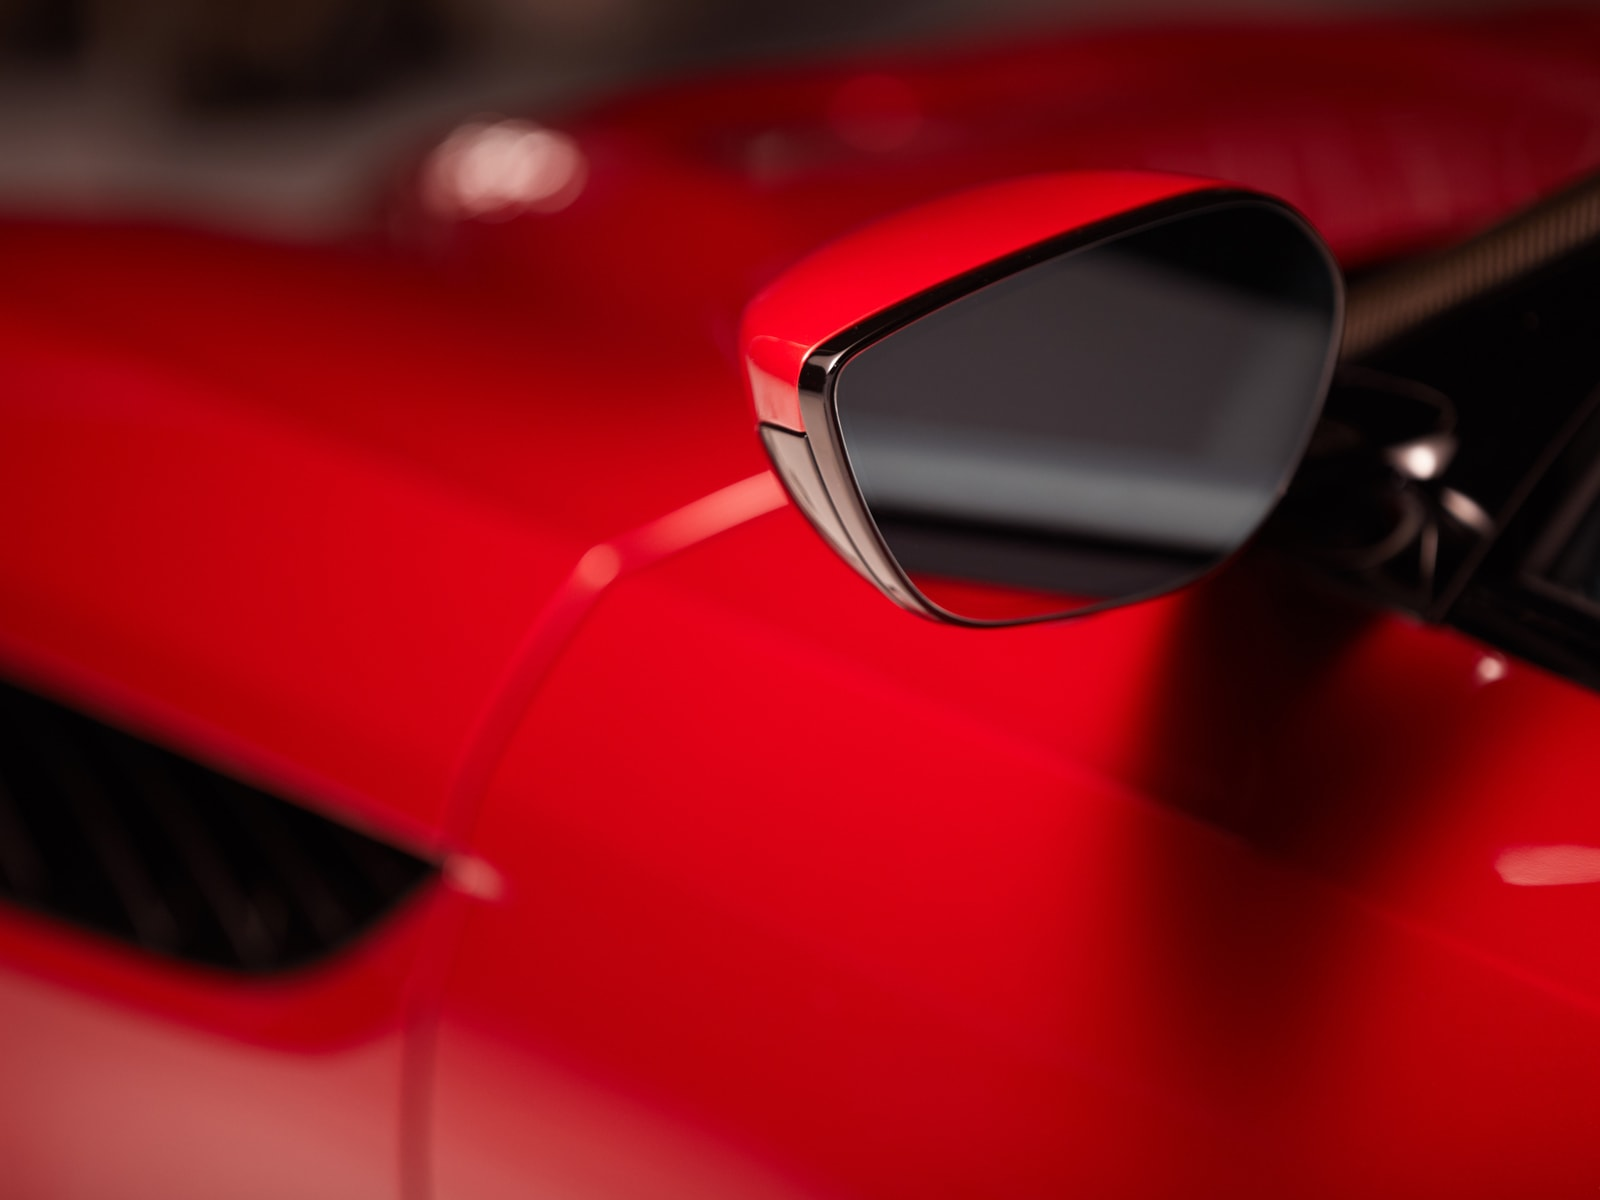 Aston Martin side mirror